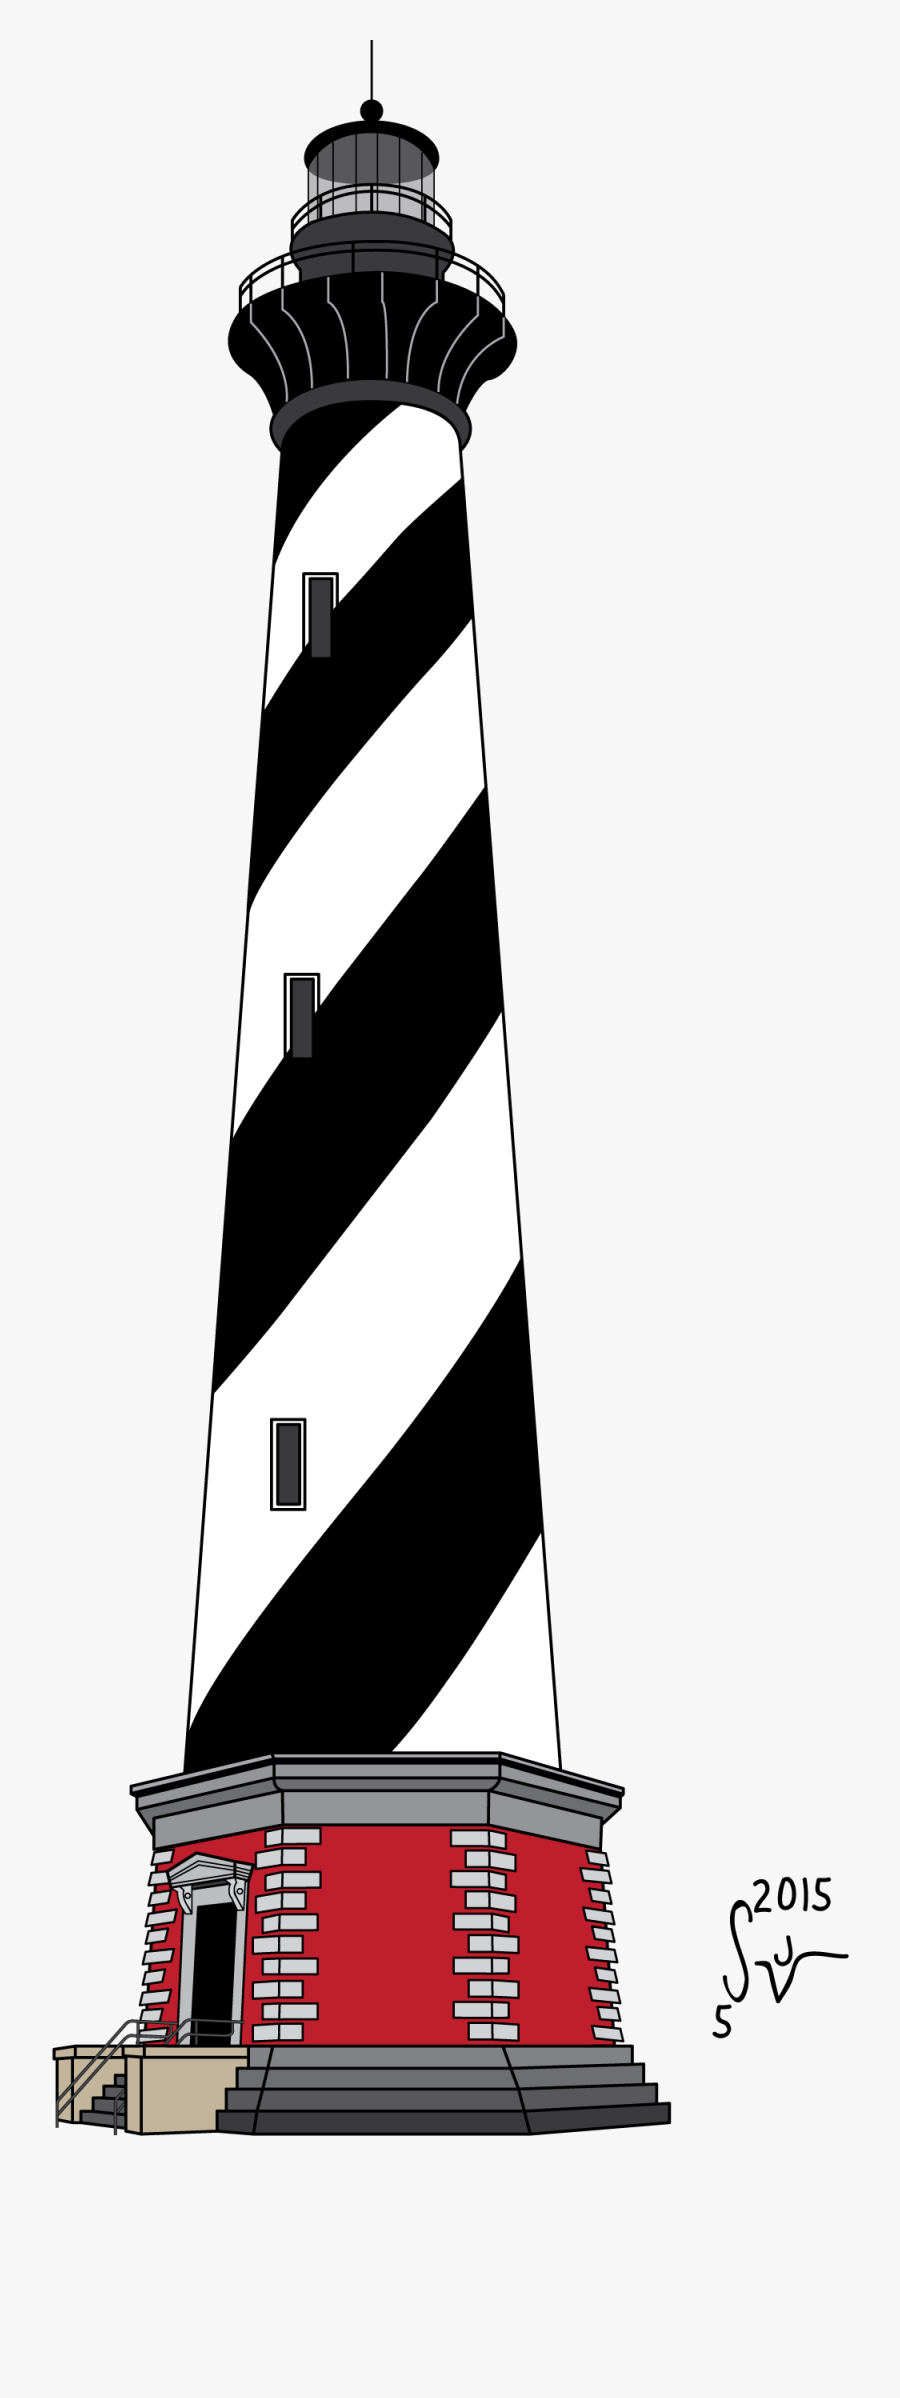 Drawn Lighthouse Cape Hatteras Lighthouse - Cape Hatteras Lighthouse Drawing, Transparent Clipart